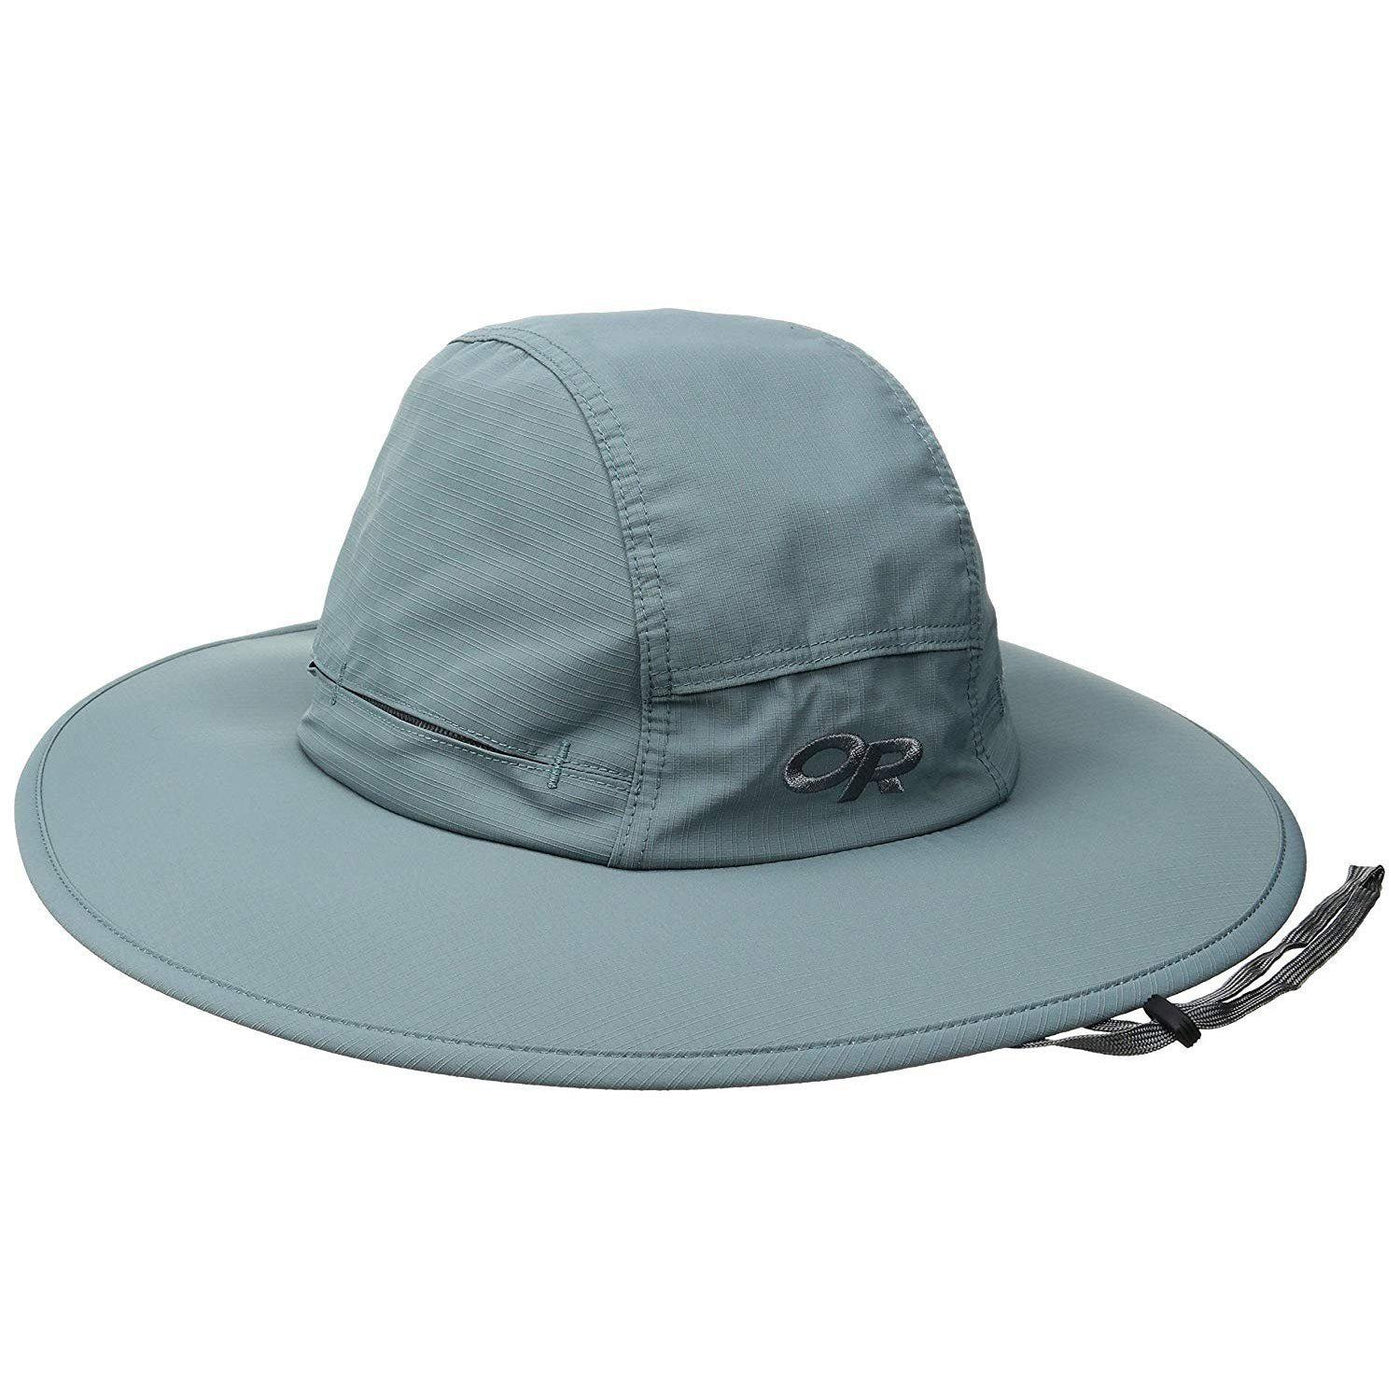 365ca8e21 Outdoor Research Sombriolet Sun Hat – GrivetOutdoors.com